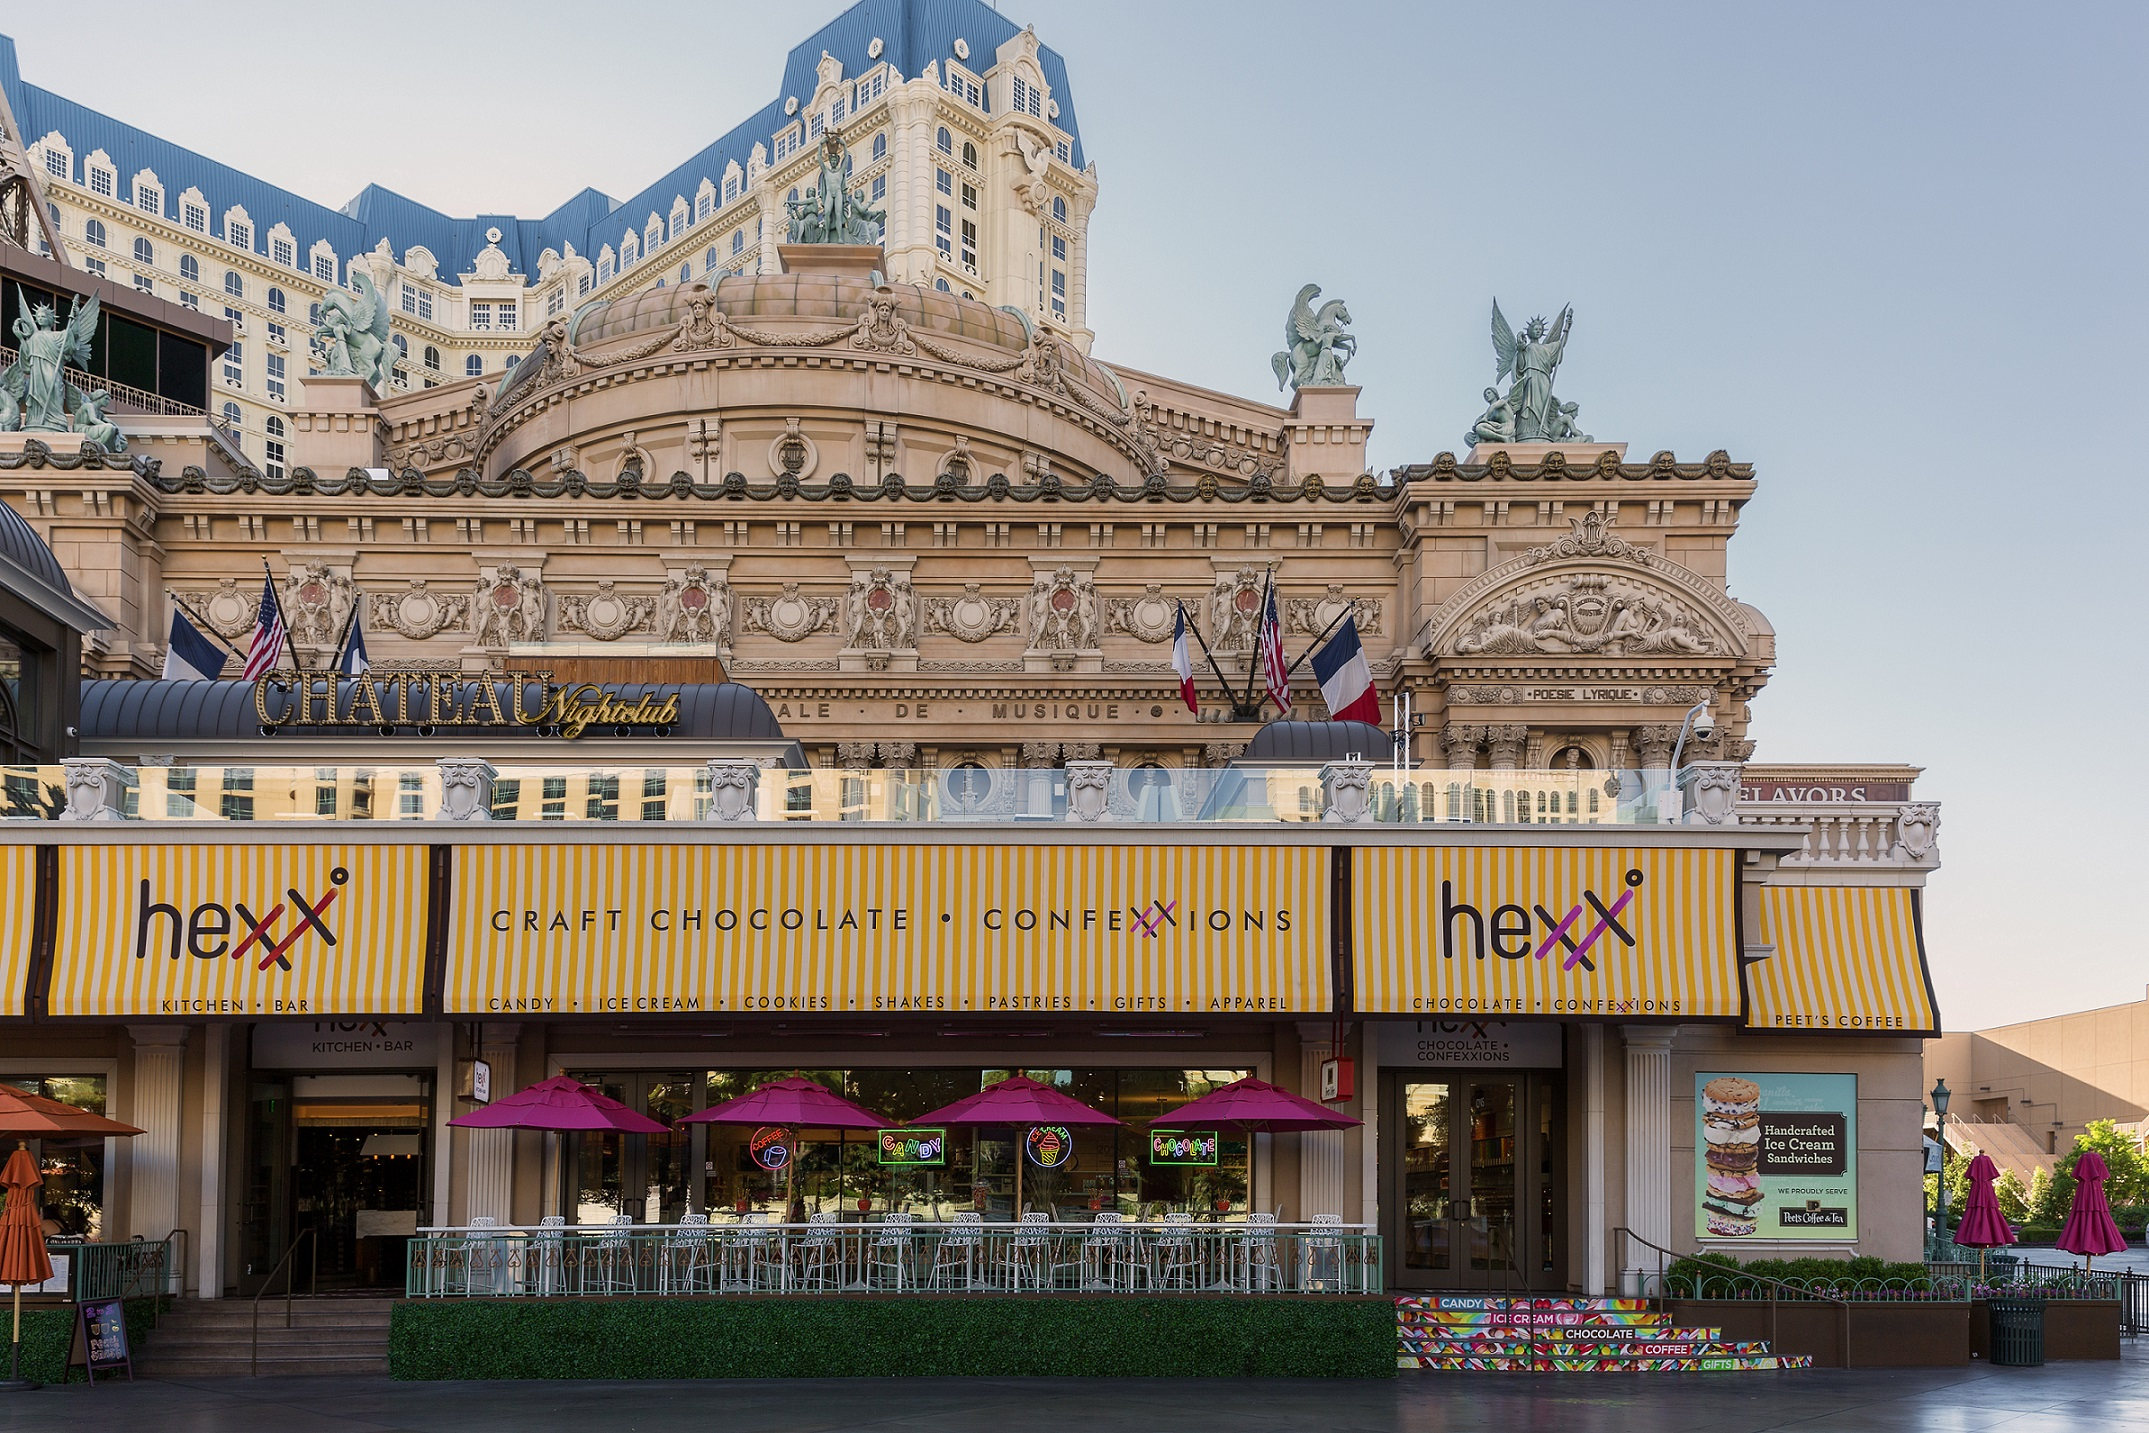 The patio at HEXX offers great Strip views, photo courtesy of Paris Las Vegas.